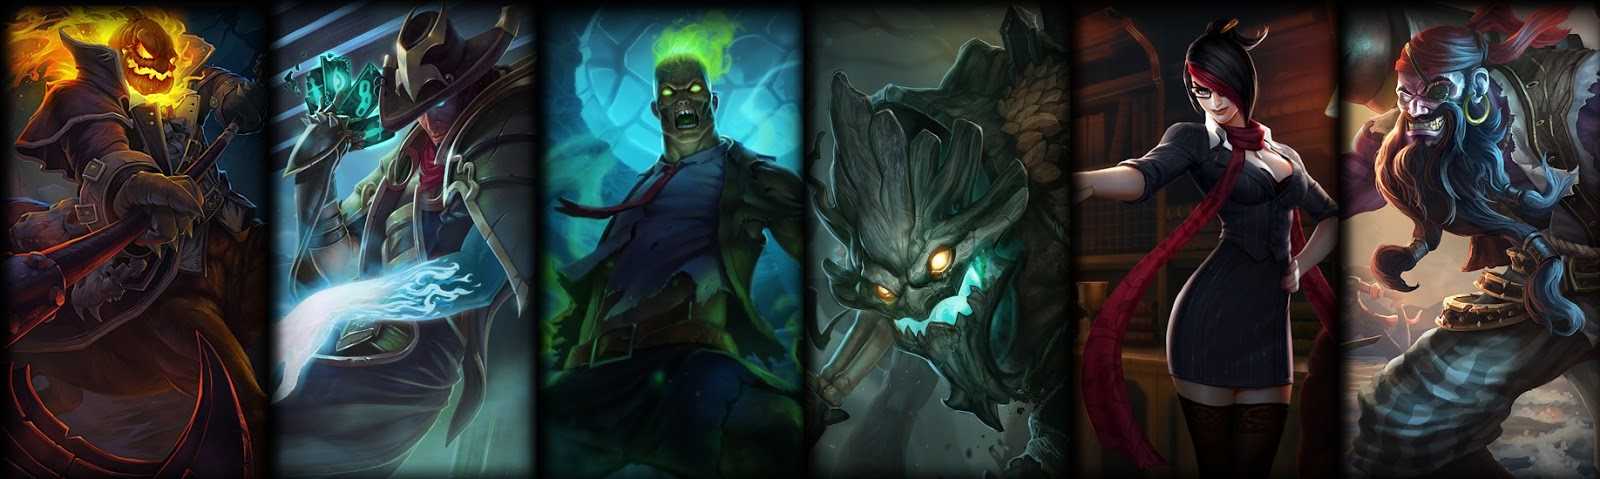 Surrender at 20: ETA on Skins/Icons, No Harrowing SR, and more